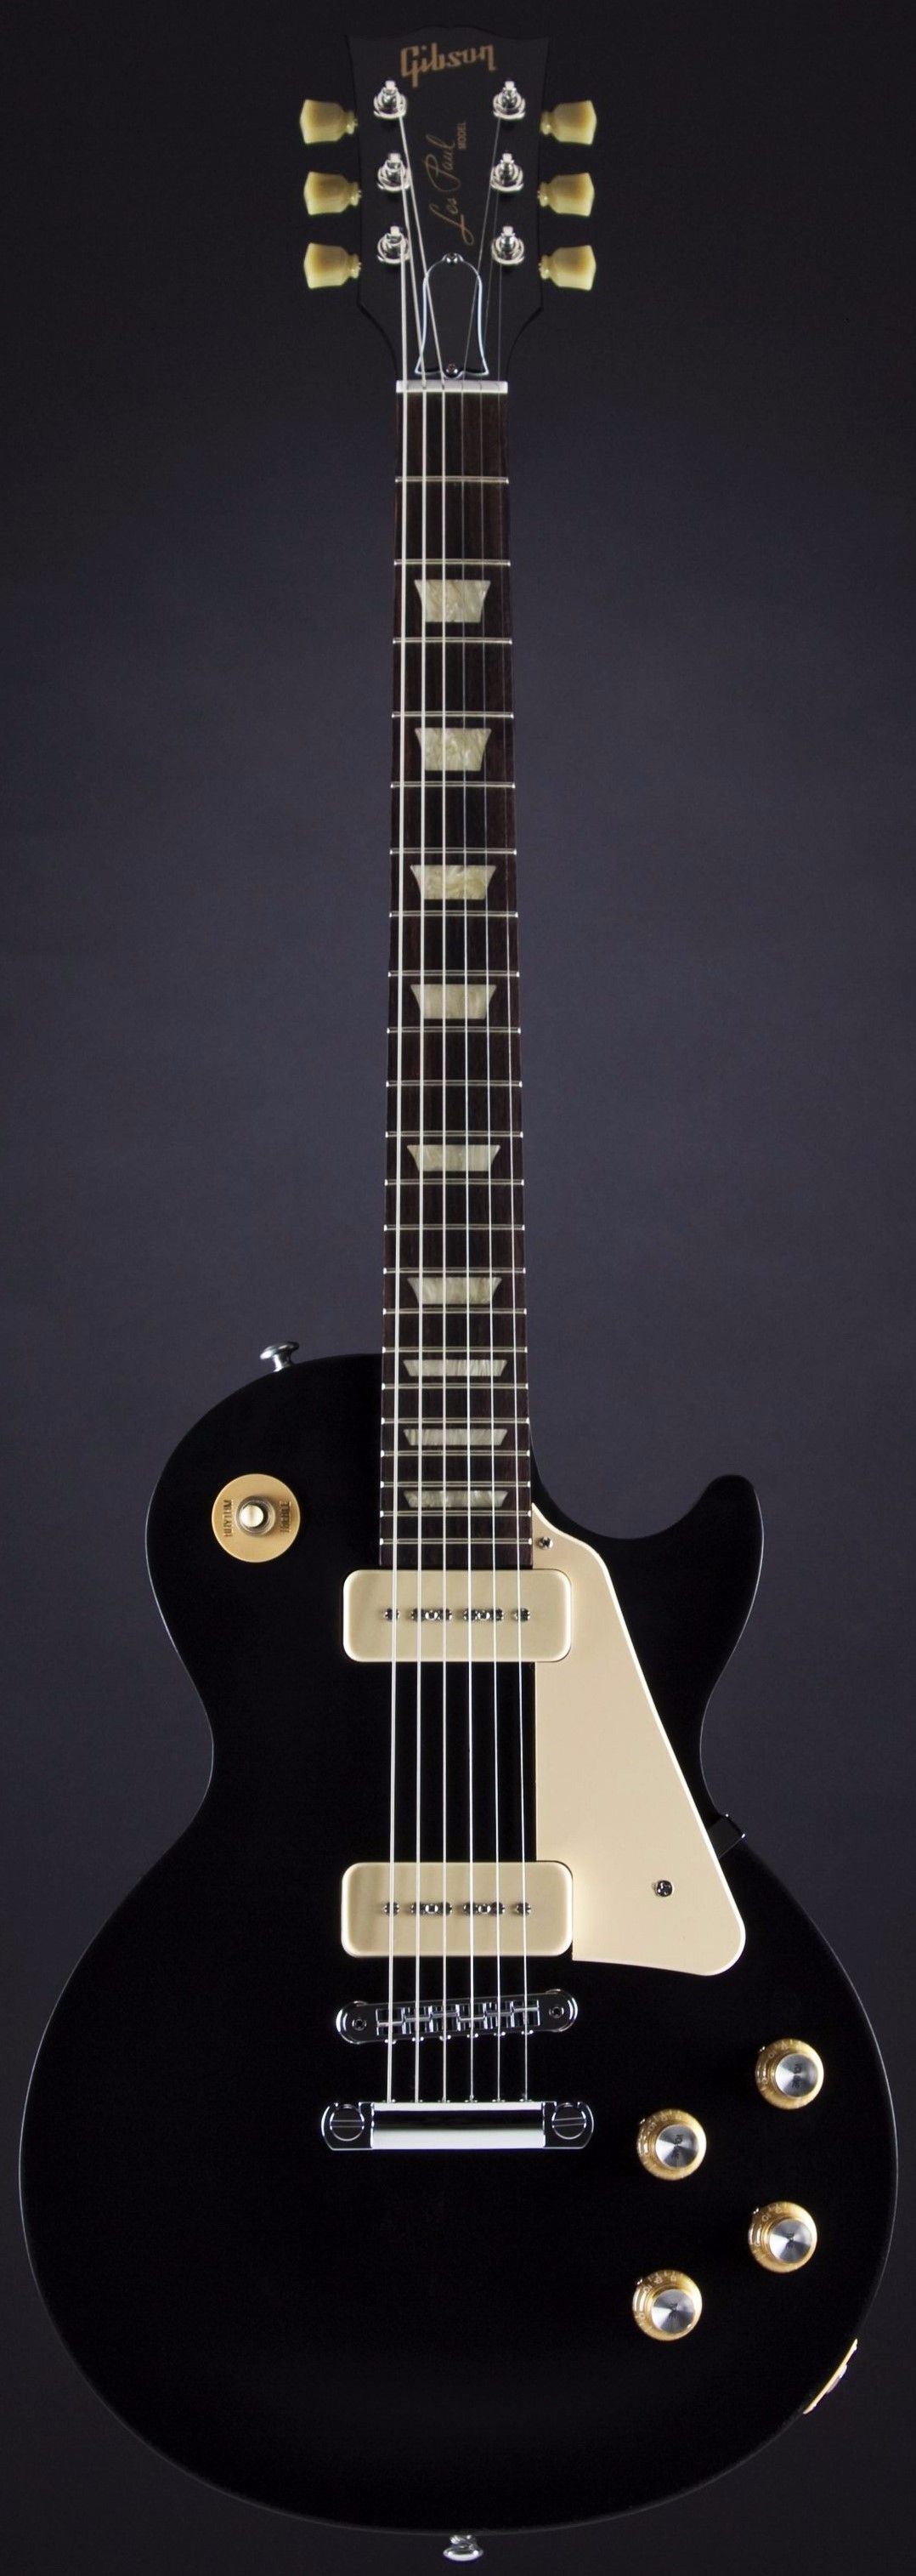 gibson les paul 60s tribute in satin ebony 2016 guitarras